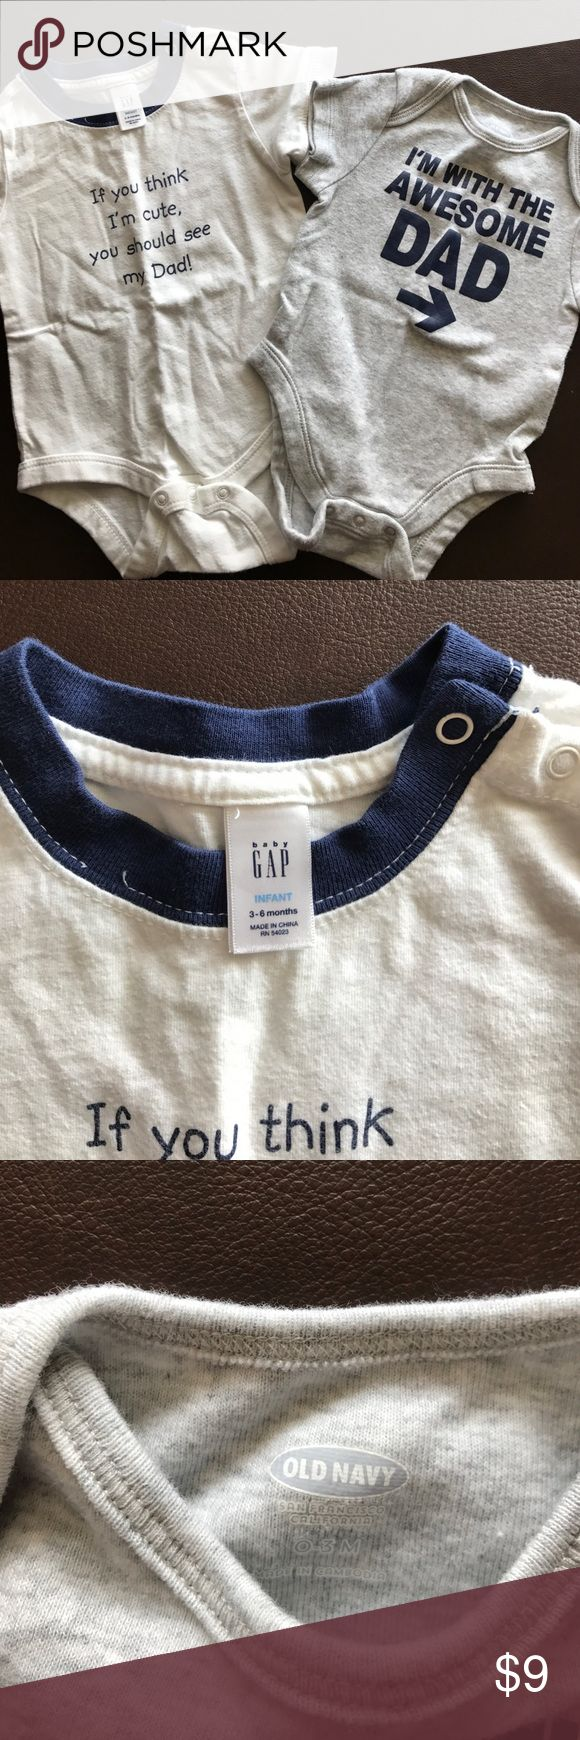 Two baby boy onesies- Baby Gap/Old Navy Two baby boy onesies. 1 Baby Gap 3-6 mo and 1 Old Navy 0-3 mo. These onesies are so cute for a little boy. Both are NWOT GAP One Pieces Bodysuits